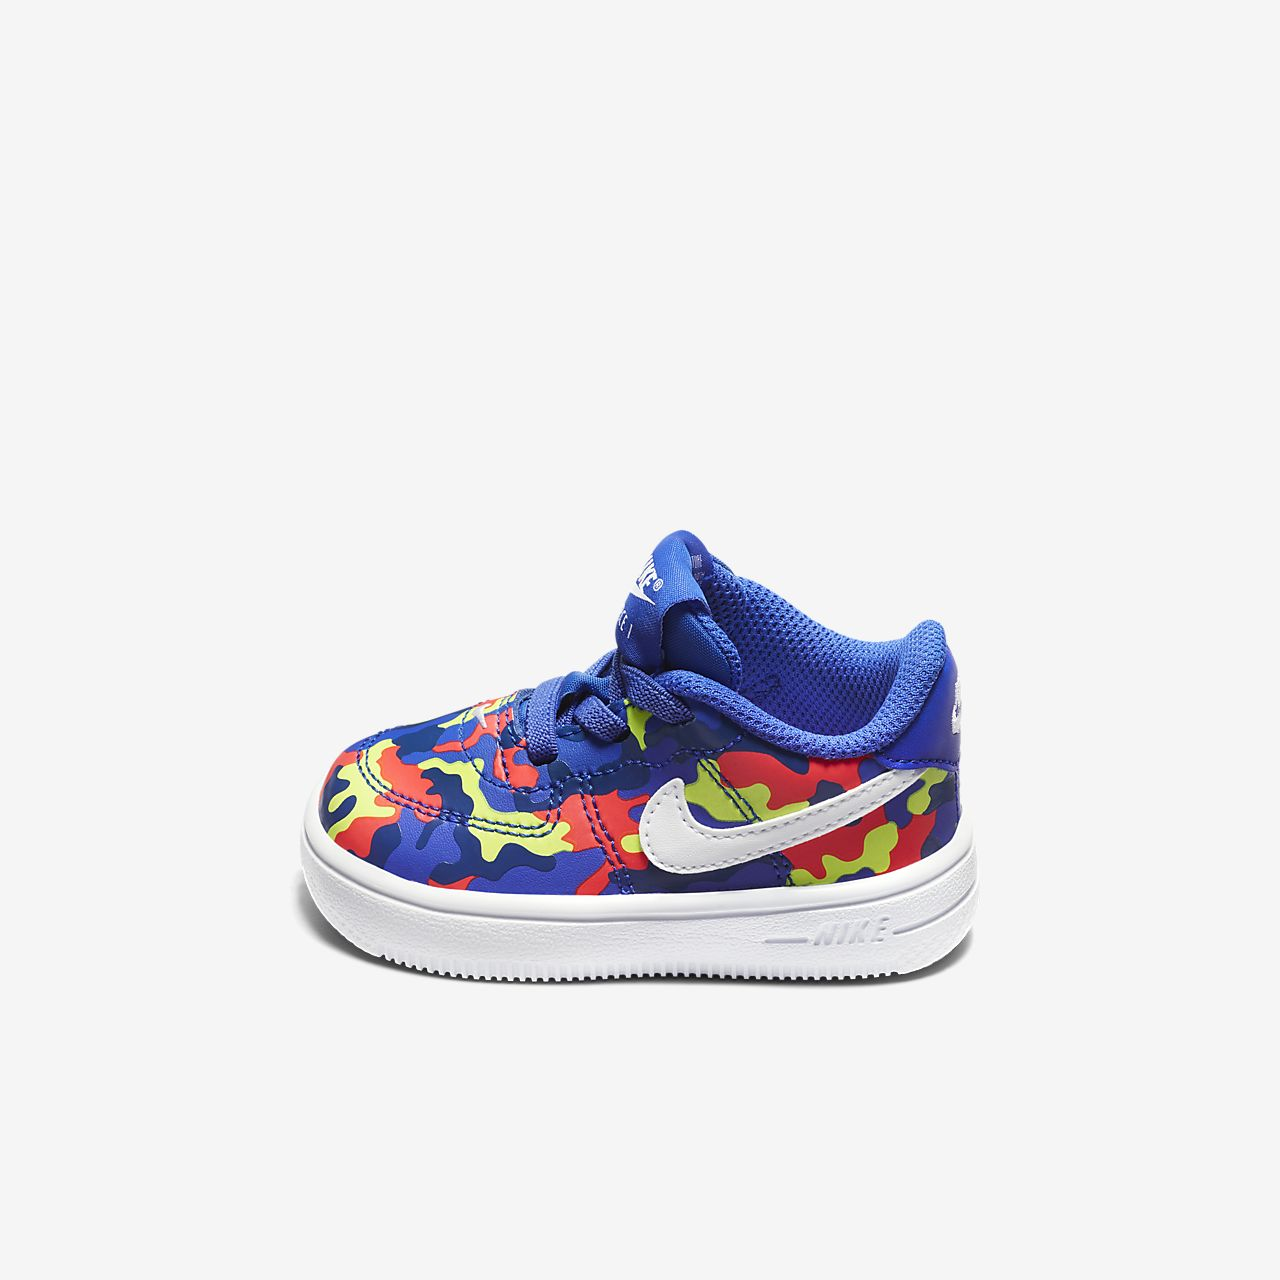 0829a4f1d328 Nike Force 1 18 Print Baby  amp  Toddler Shoe. Nike.com CH